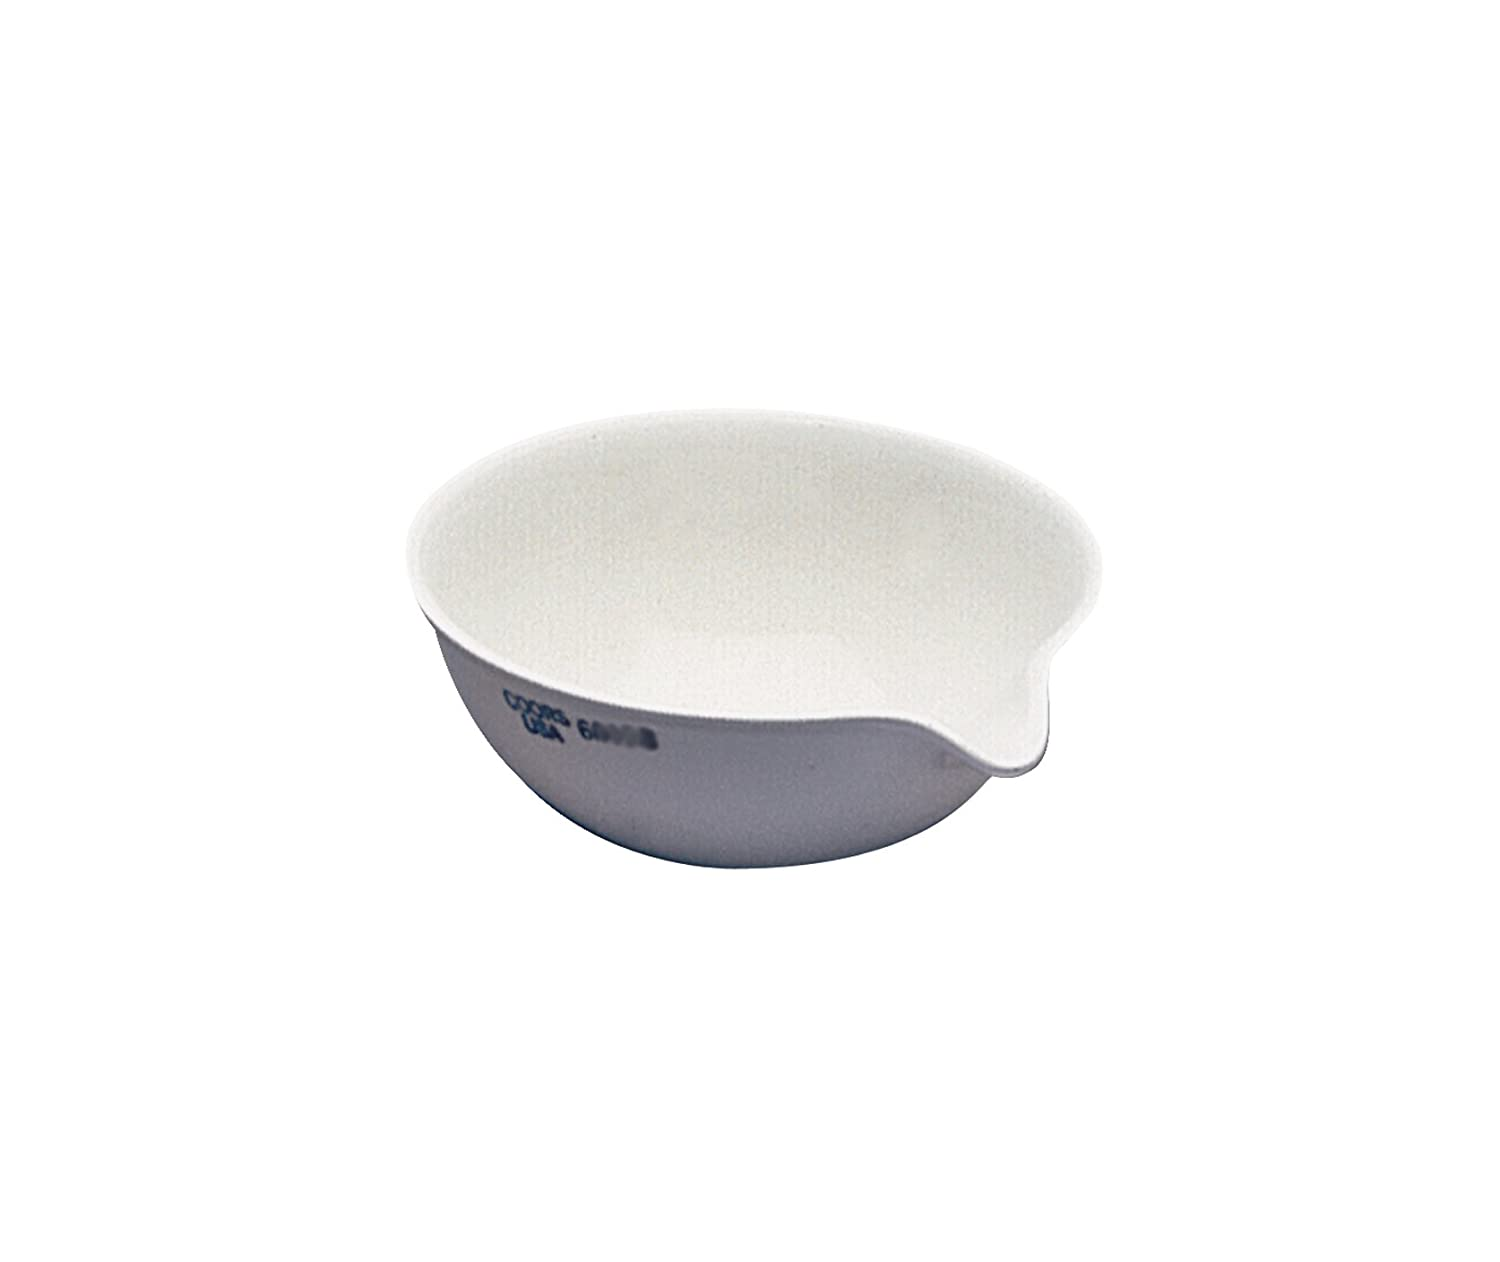 CoorsTek 60204 Porcelain Ceramic Evaporating Dish with Pouring Lip, 385mL Capacity, 145mm OD, 45mm Height